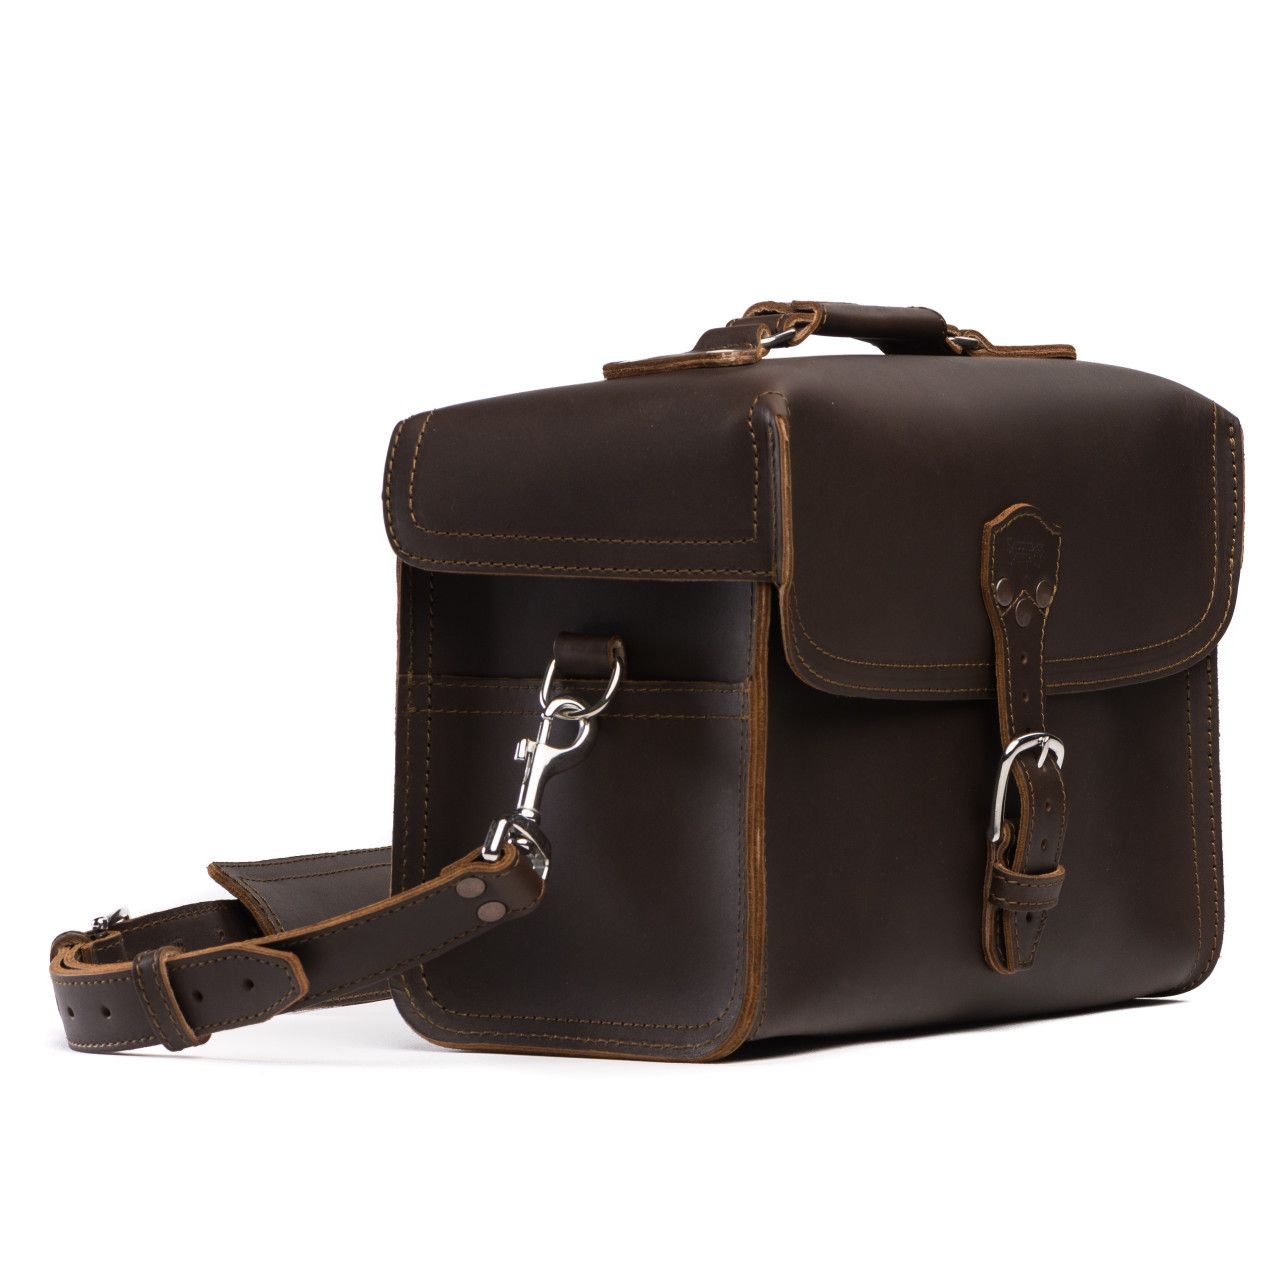 leather gadget bag large in dark coffee brown leather